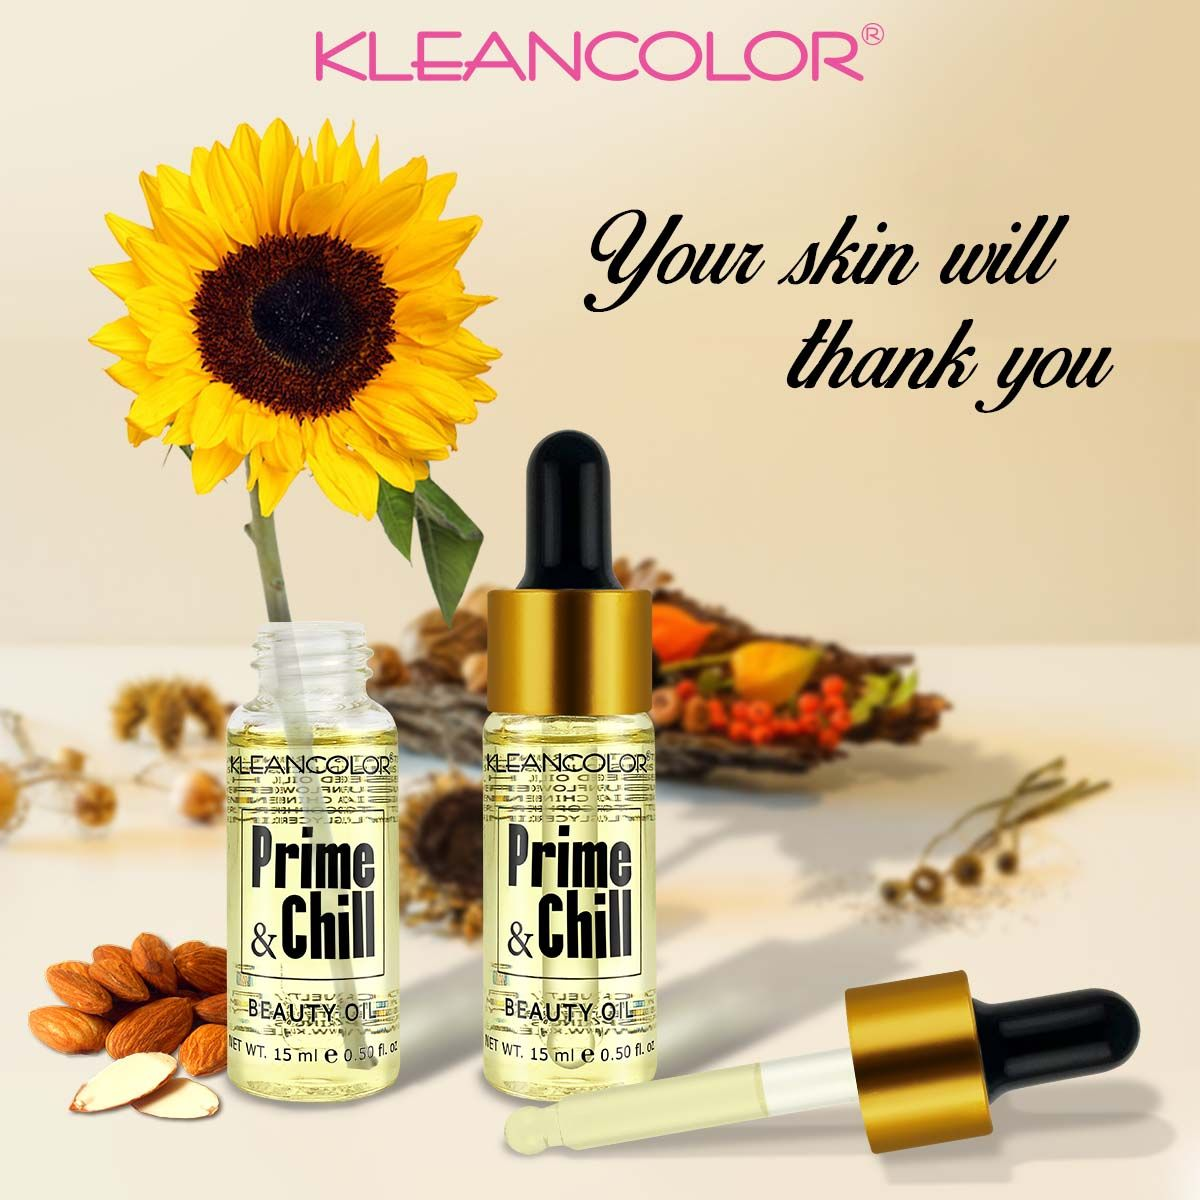 Prime & chill beauty oil (With images) Beauty oil